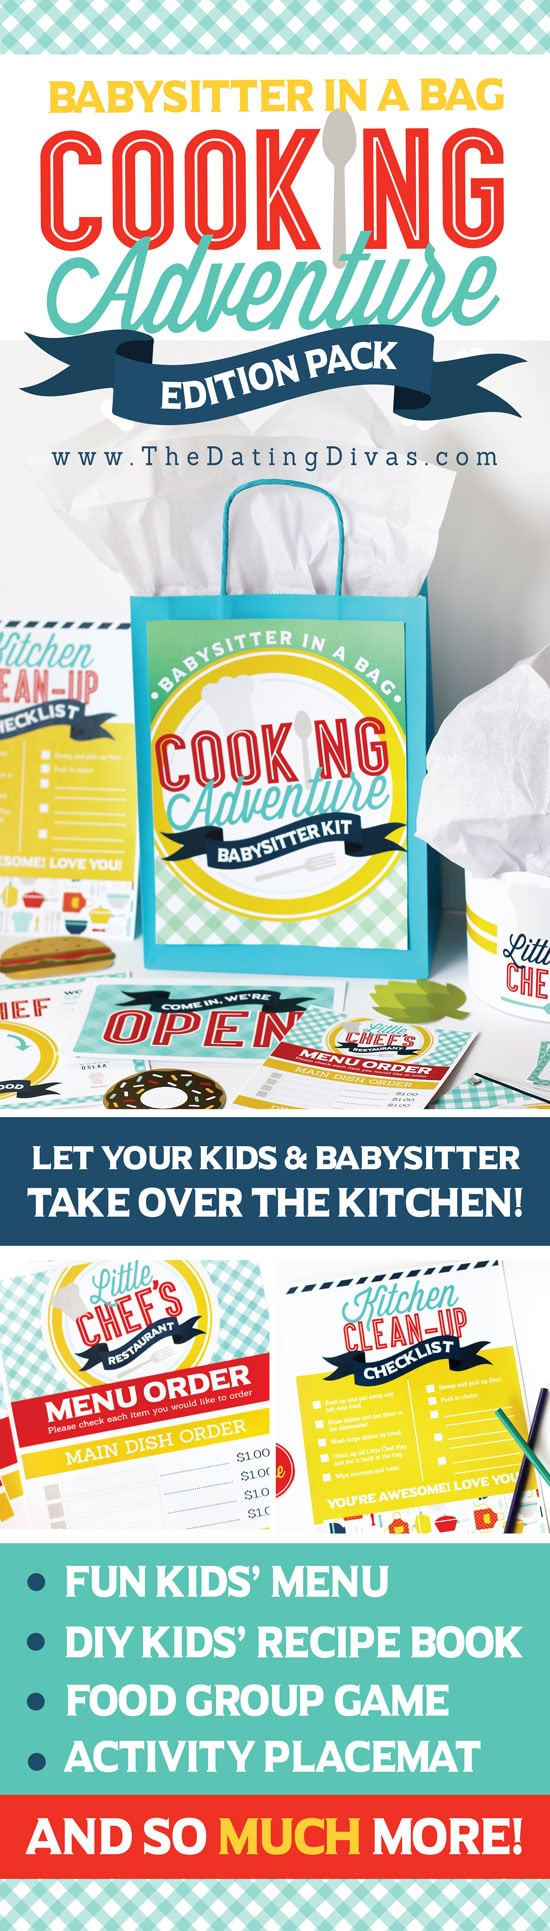 Cooking with kids kit to have fun in the kitchen with your kiddos! #TheDatingDivas #CookingWithKids